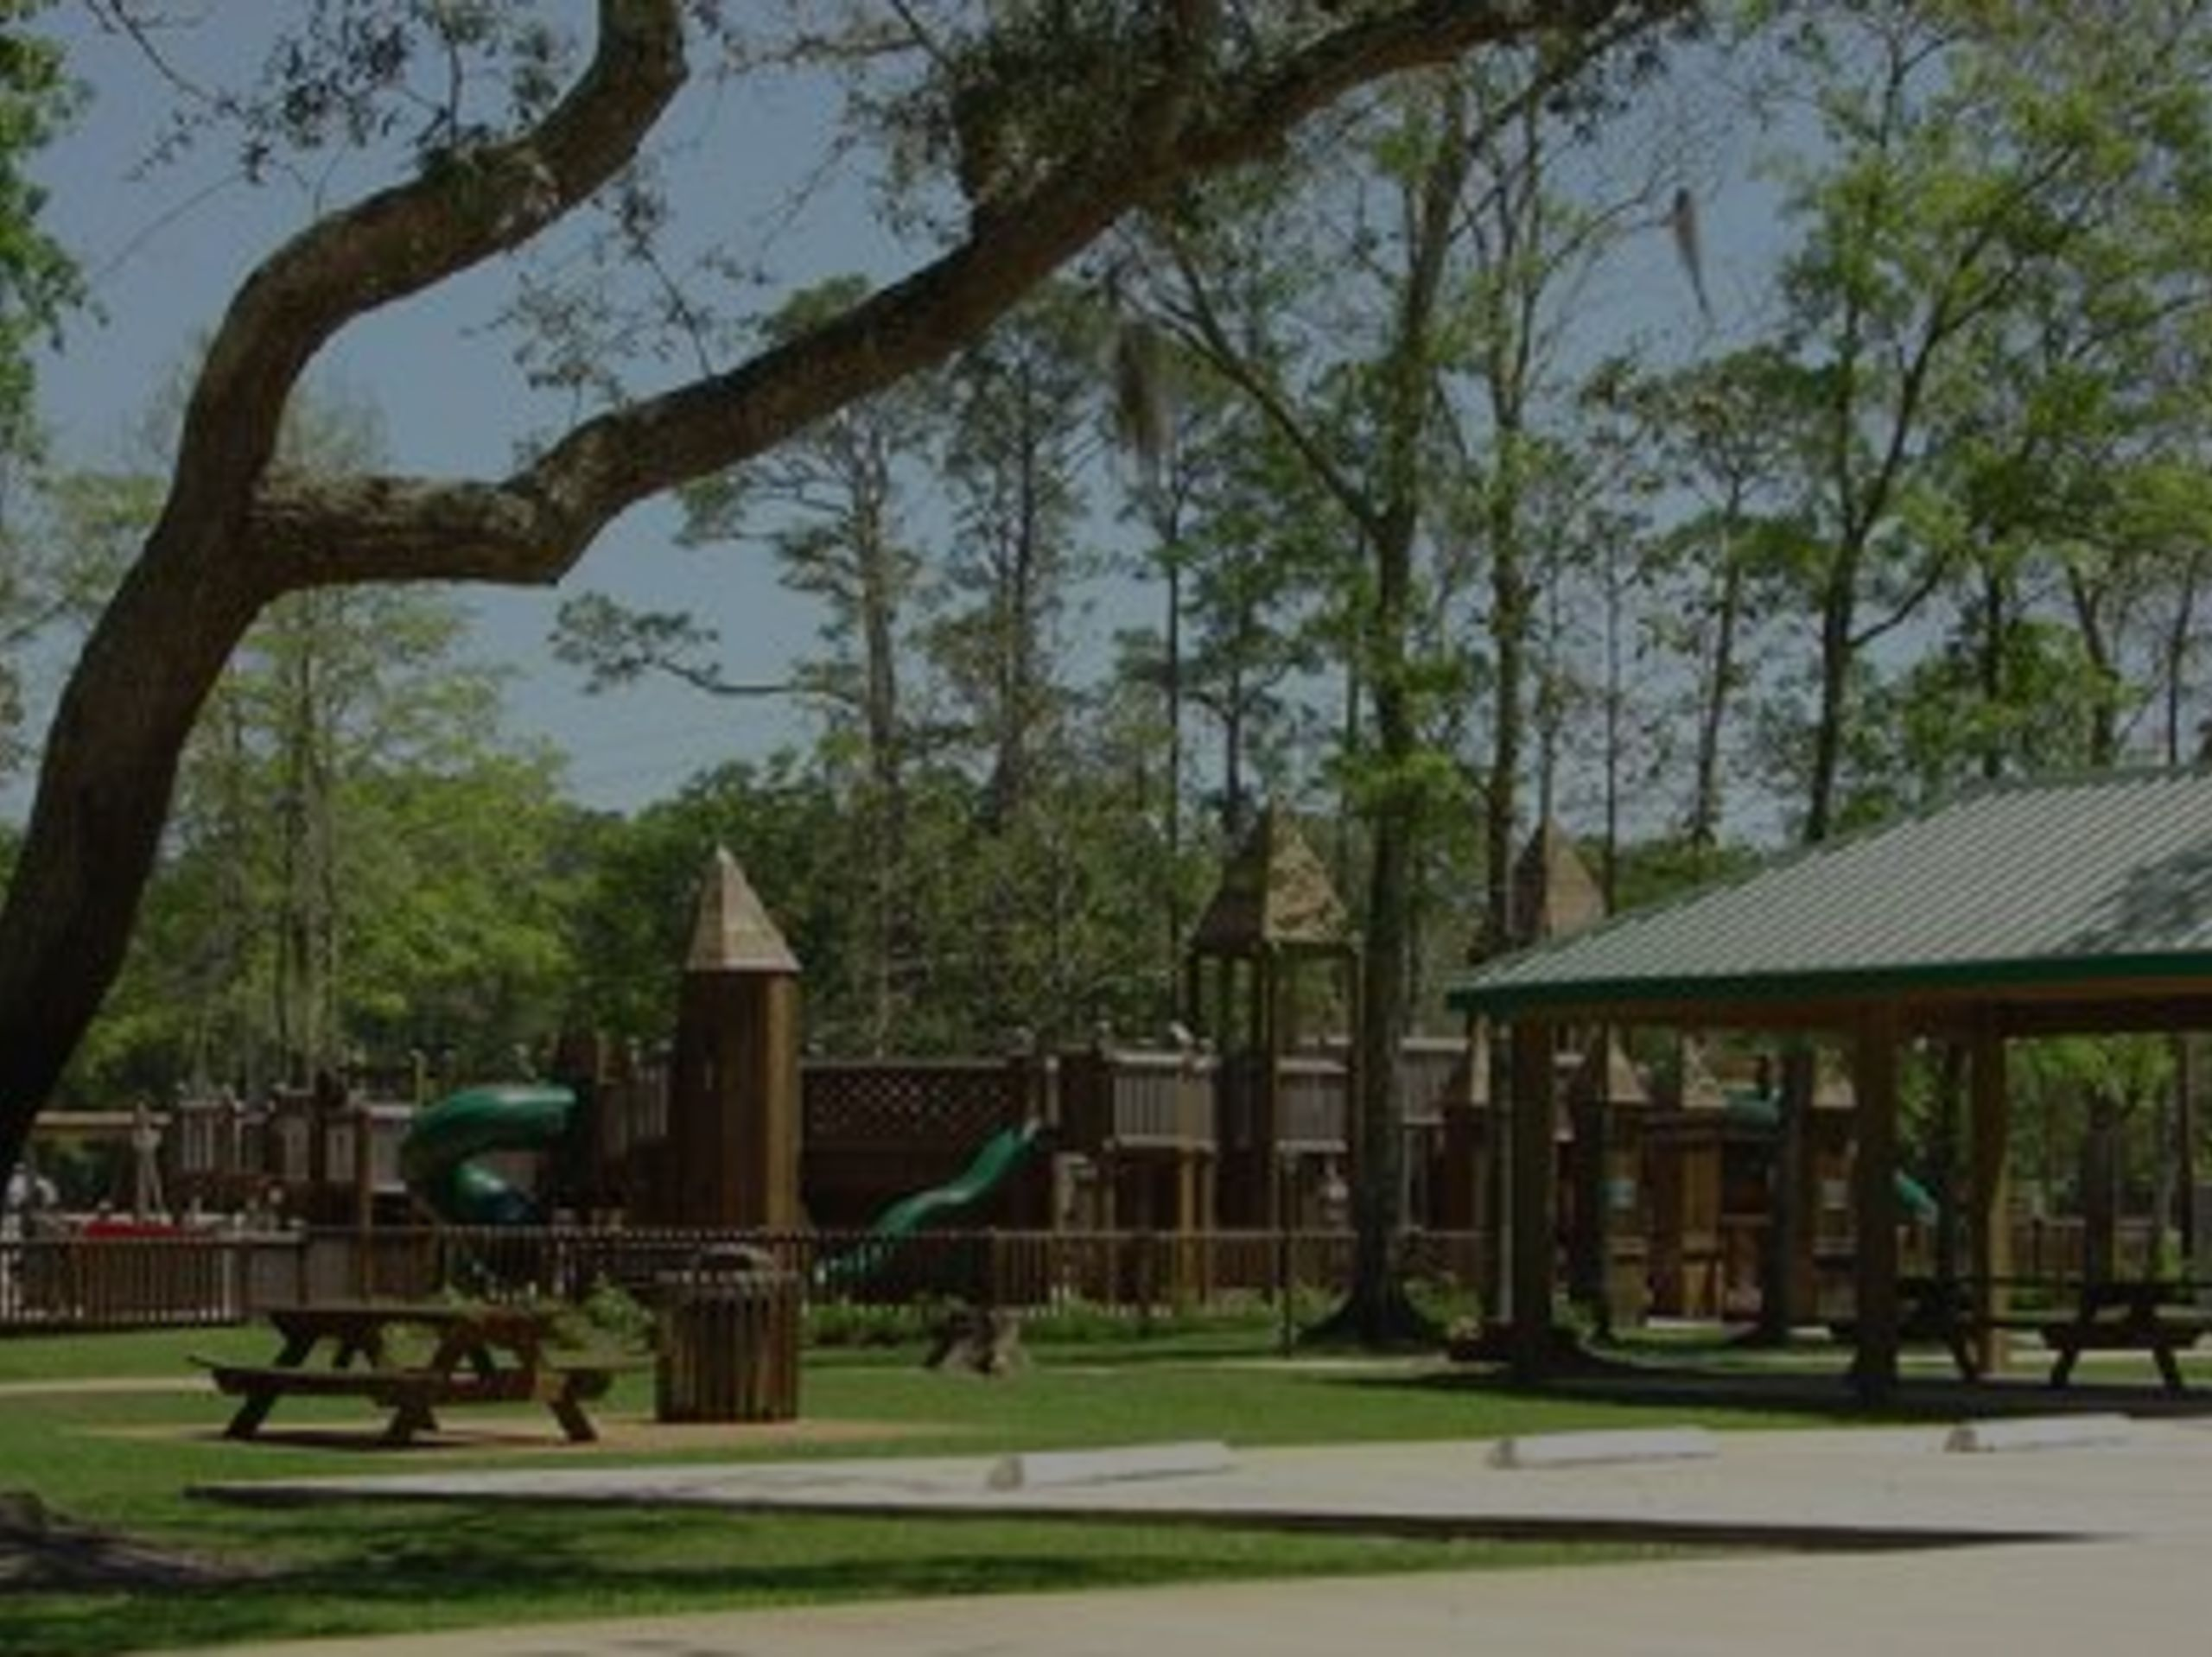 Parks in Baldwin County